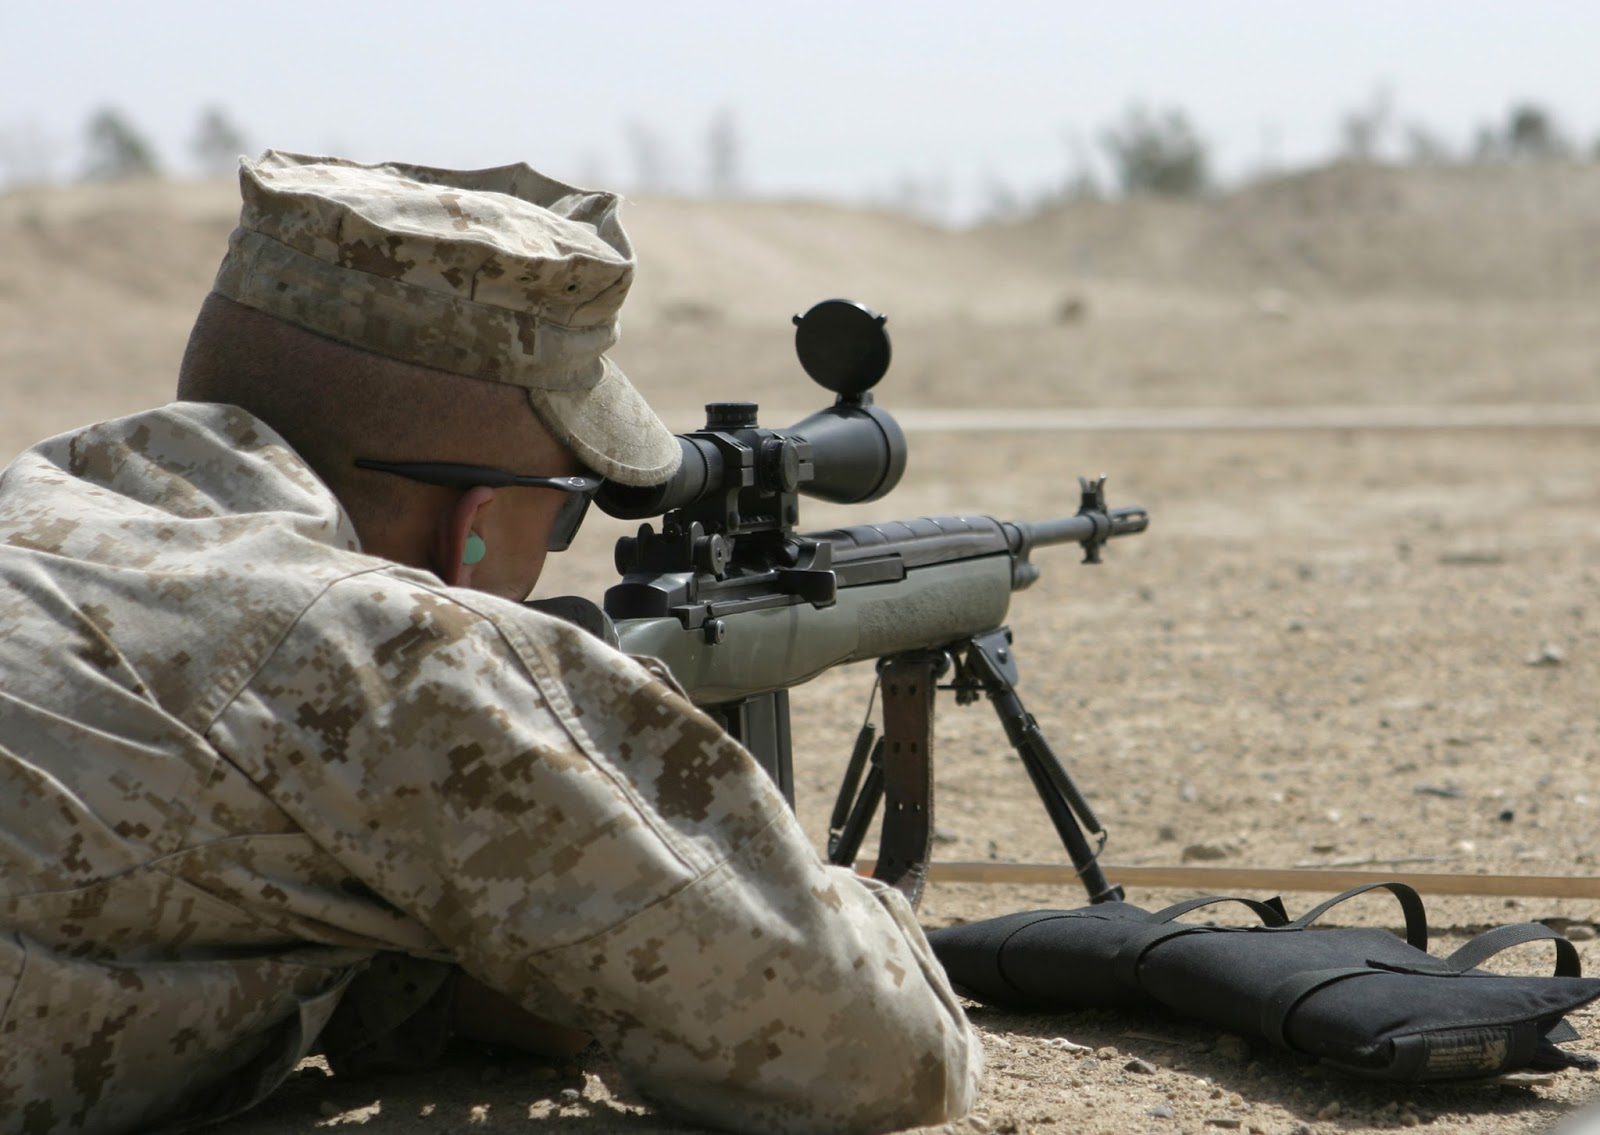 The American Cowboy Chronicles: The M14 Rifle - Part One M14 Sniper Rifle Usmc